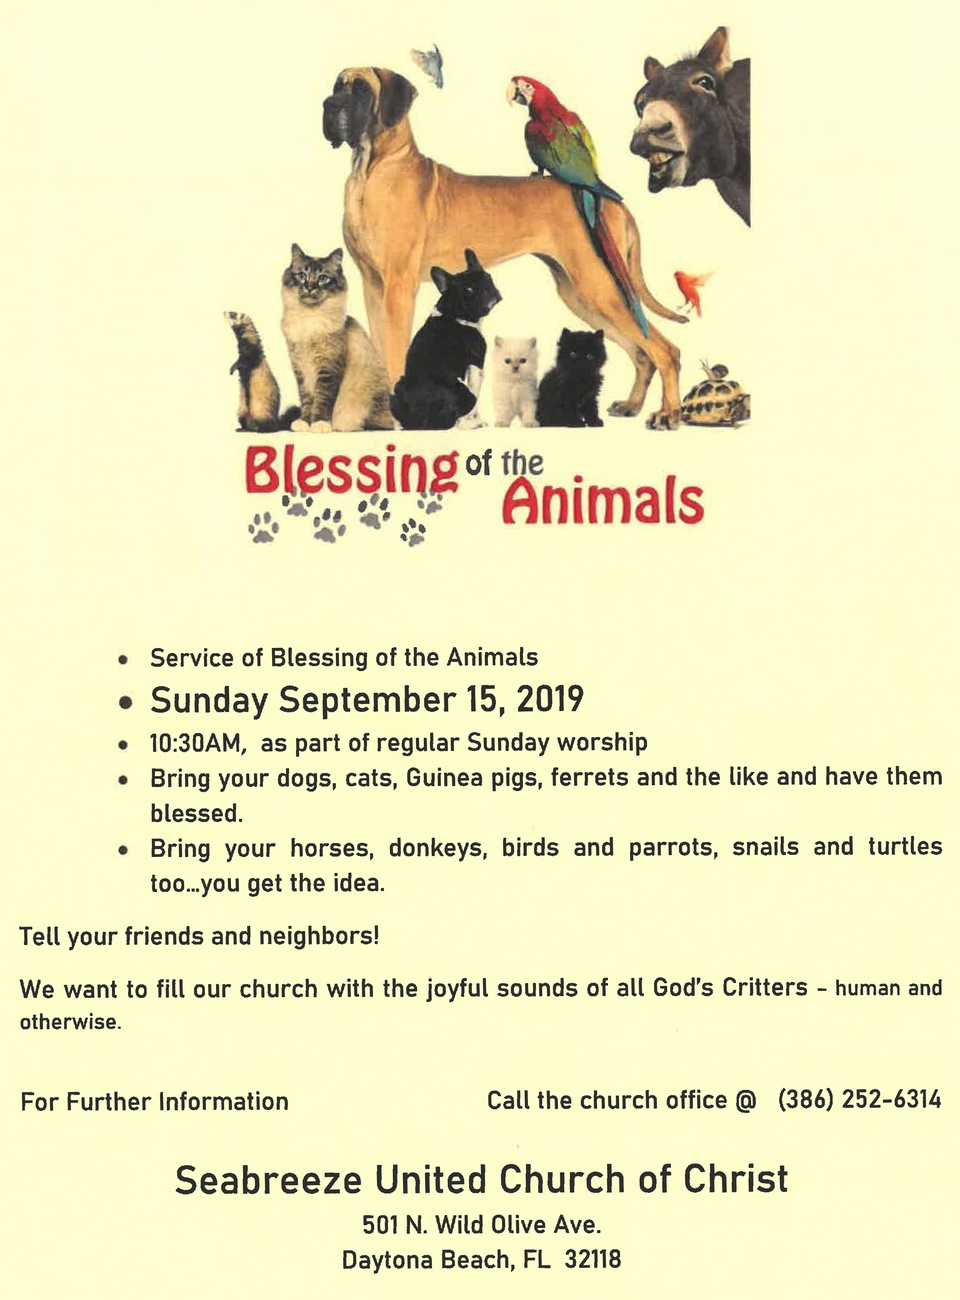 Looking to get your pets blessed?